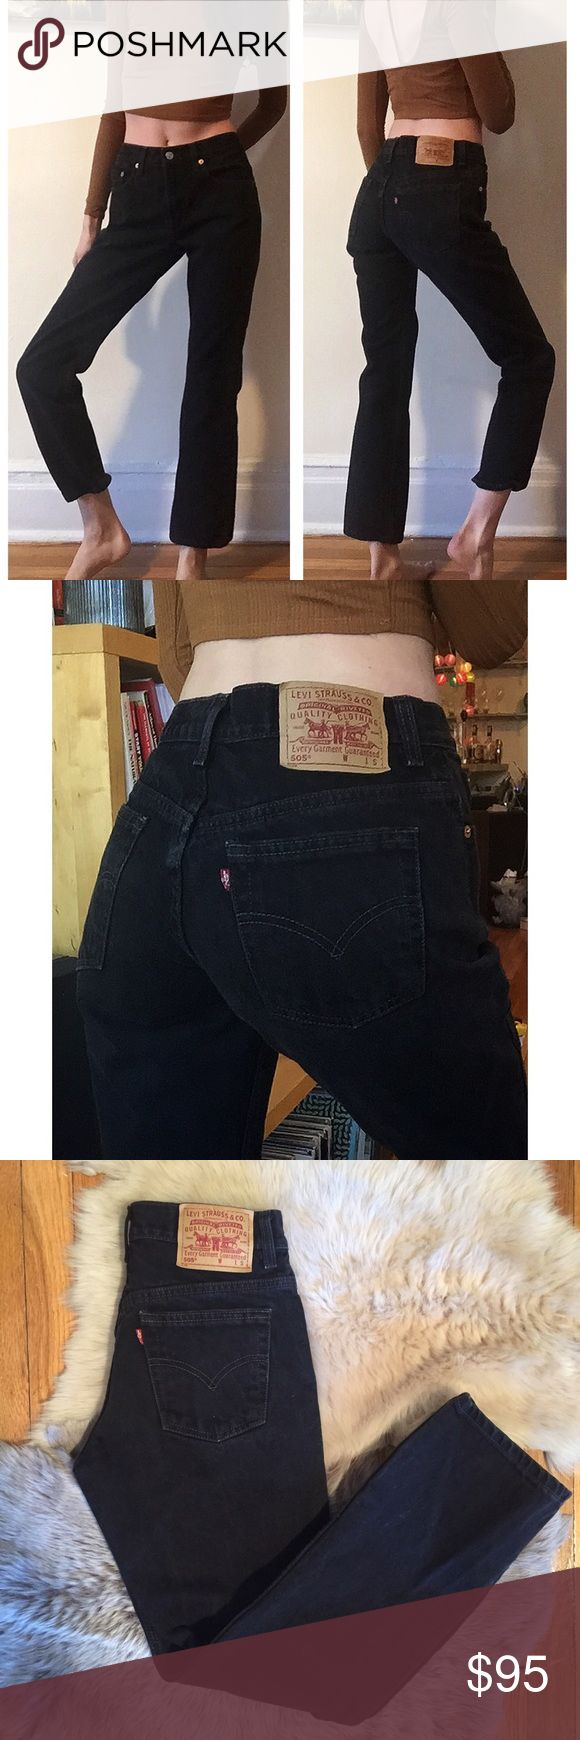 """Vintage 505 Black Levi's 28 Amazing and GORGEOUS black vintage 505 Levi's! 28"""" waist, 10"""" rise, 29"""" inseam! Great quality denim and these actually hug your butt! These are in beautiful vintage condition with no holes! Upon purchase, I can cut off and fray the hem to any measurement if you'd like. Seriously BEAUTIFUL jeans!! Always cheaper on ♏️! Levi's Jeans"""